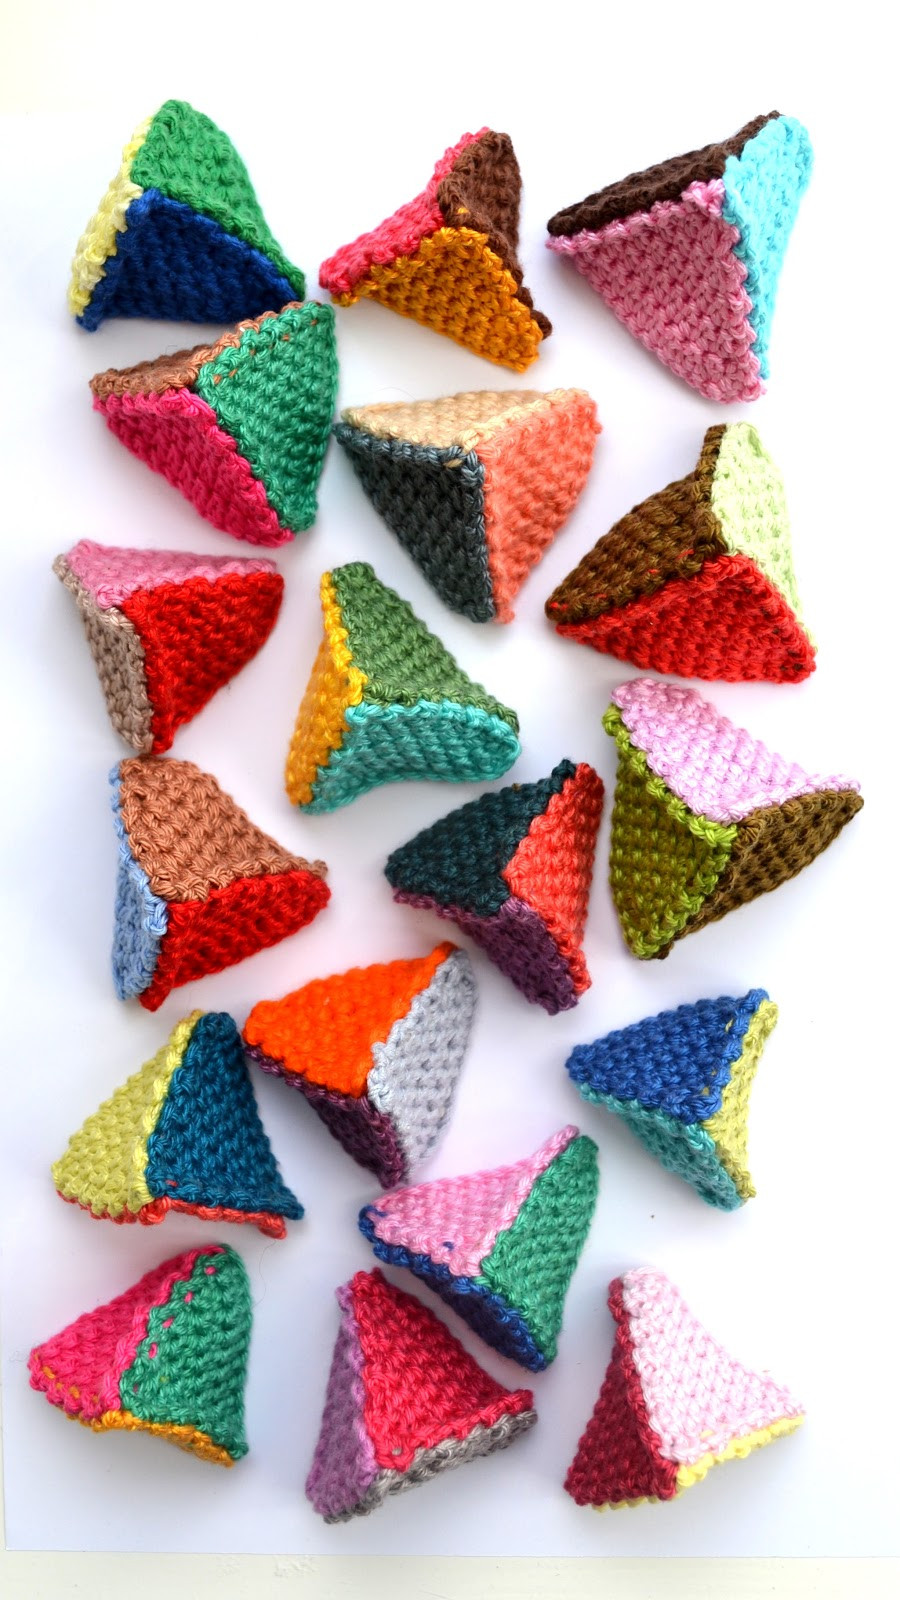 New Ingthings Diy Crochet Pyramid Triangle Mountain Crochet Triangles Of Charming 42 Images Crochet Triangles